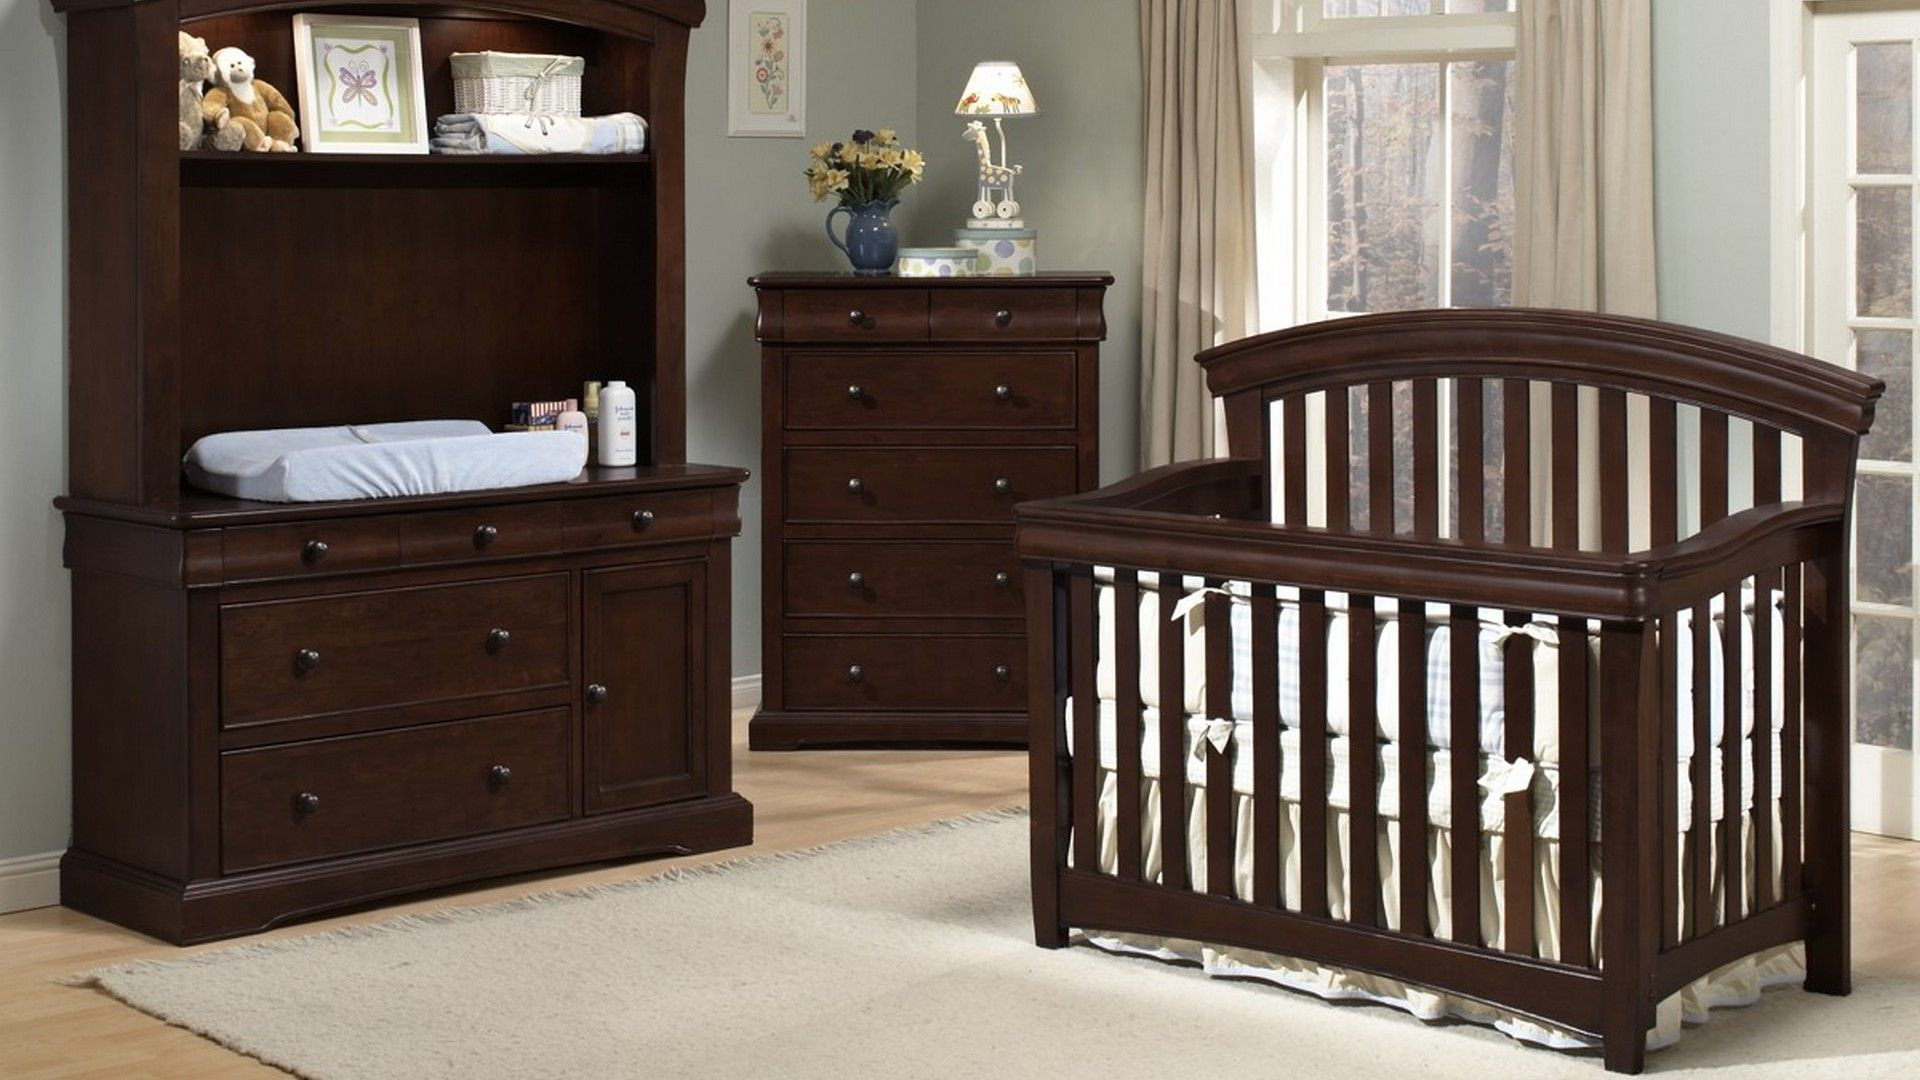 Stylish Dark Wooden Baby Furniture For Dresser Cabinet And Crib With White Lamps